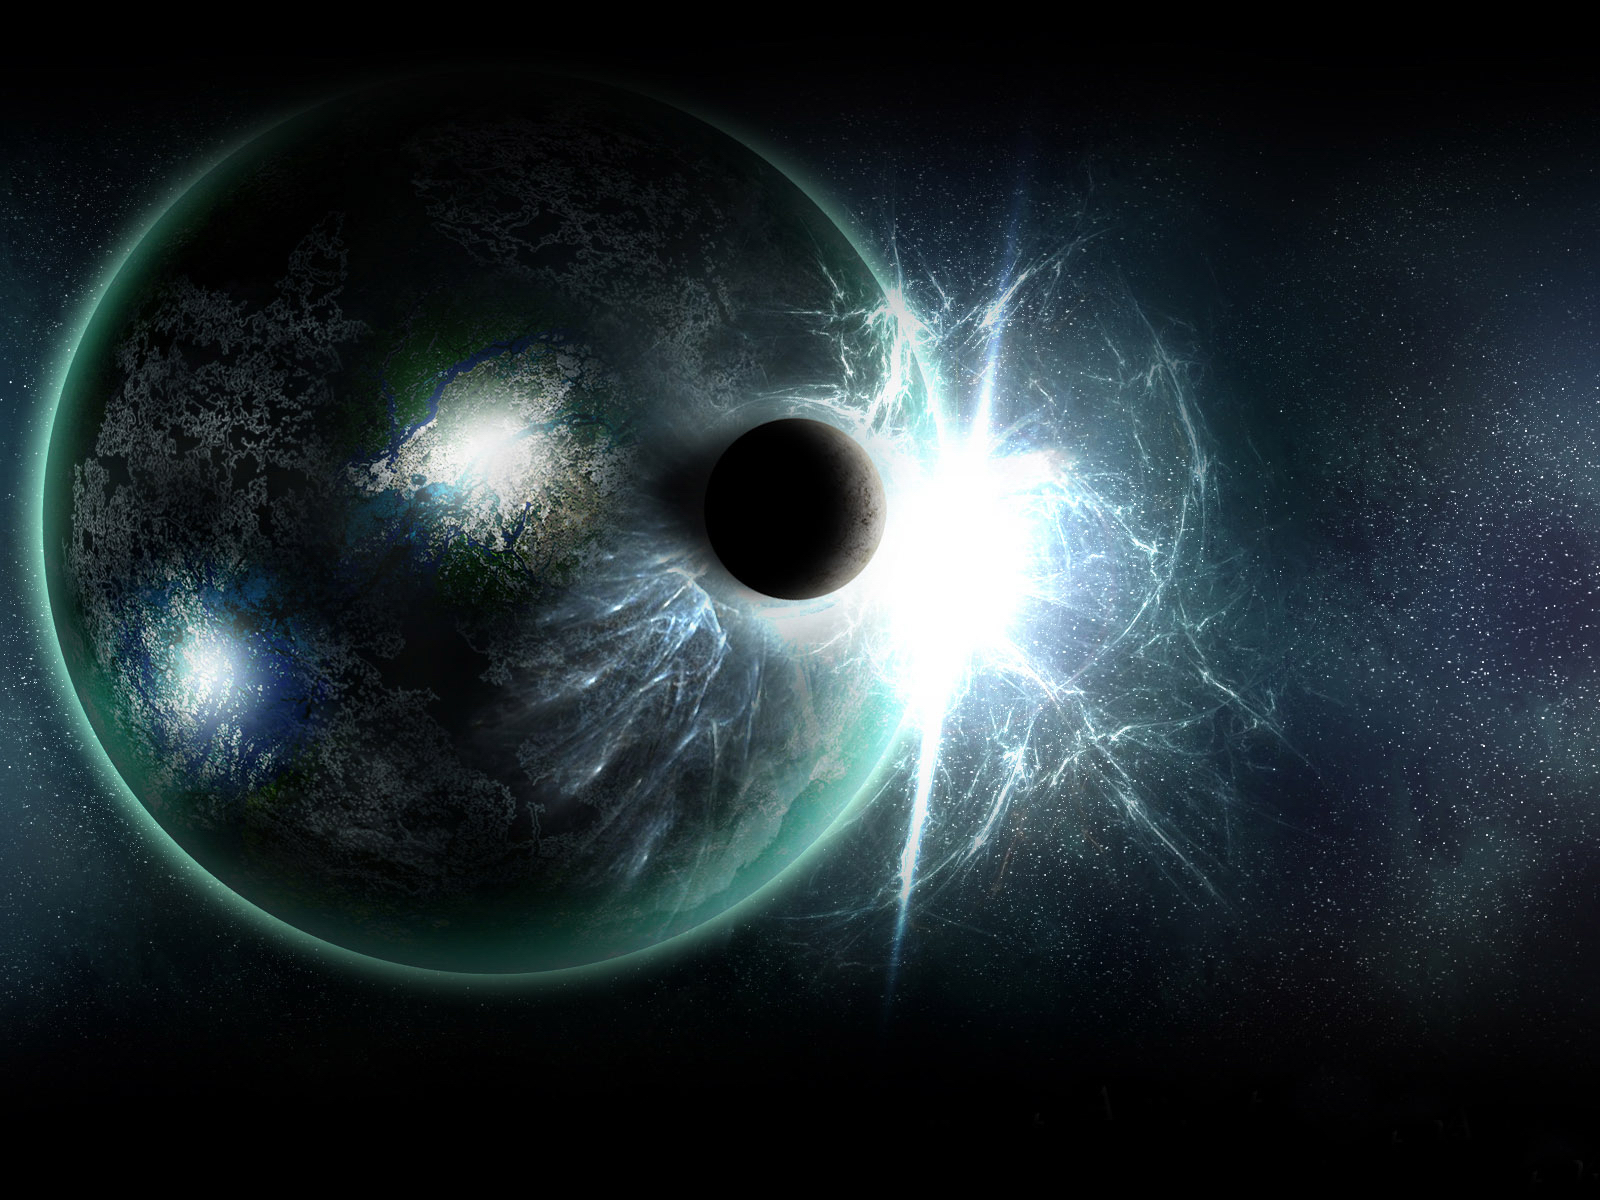 space wallpapers hd 1080p space wallpapers hd 1080p space wallpapers 1600x1200